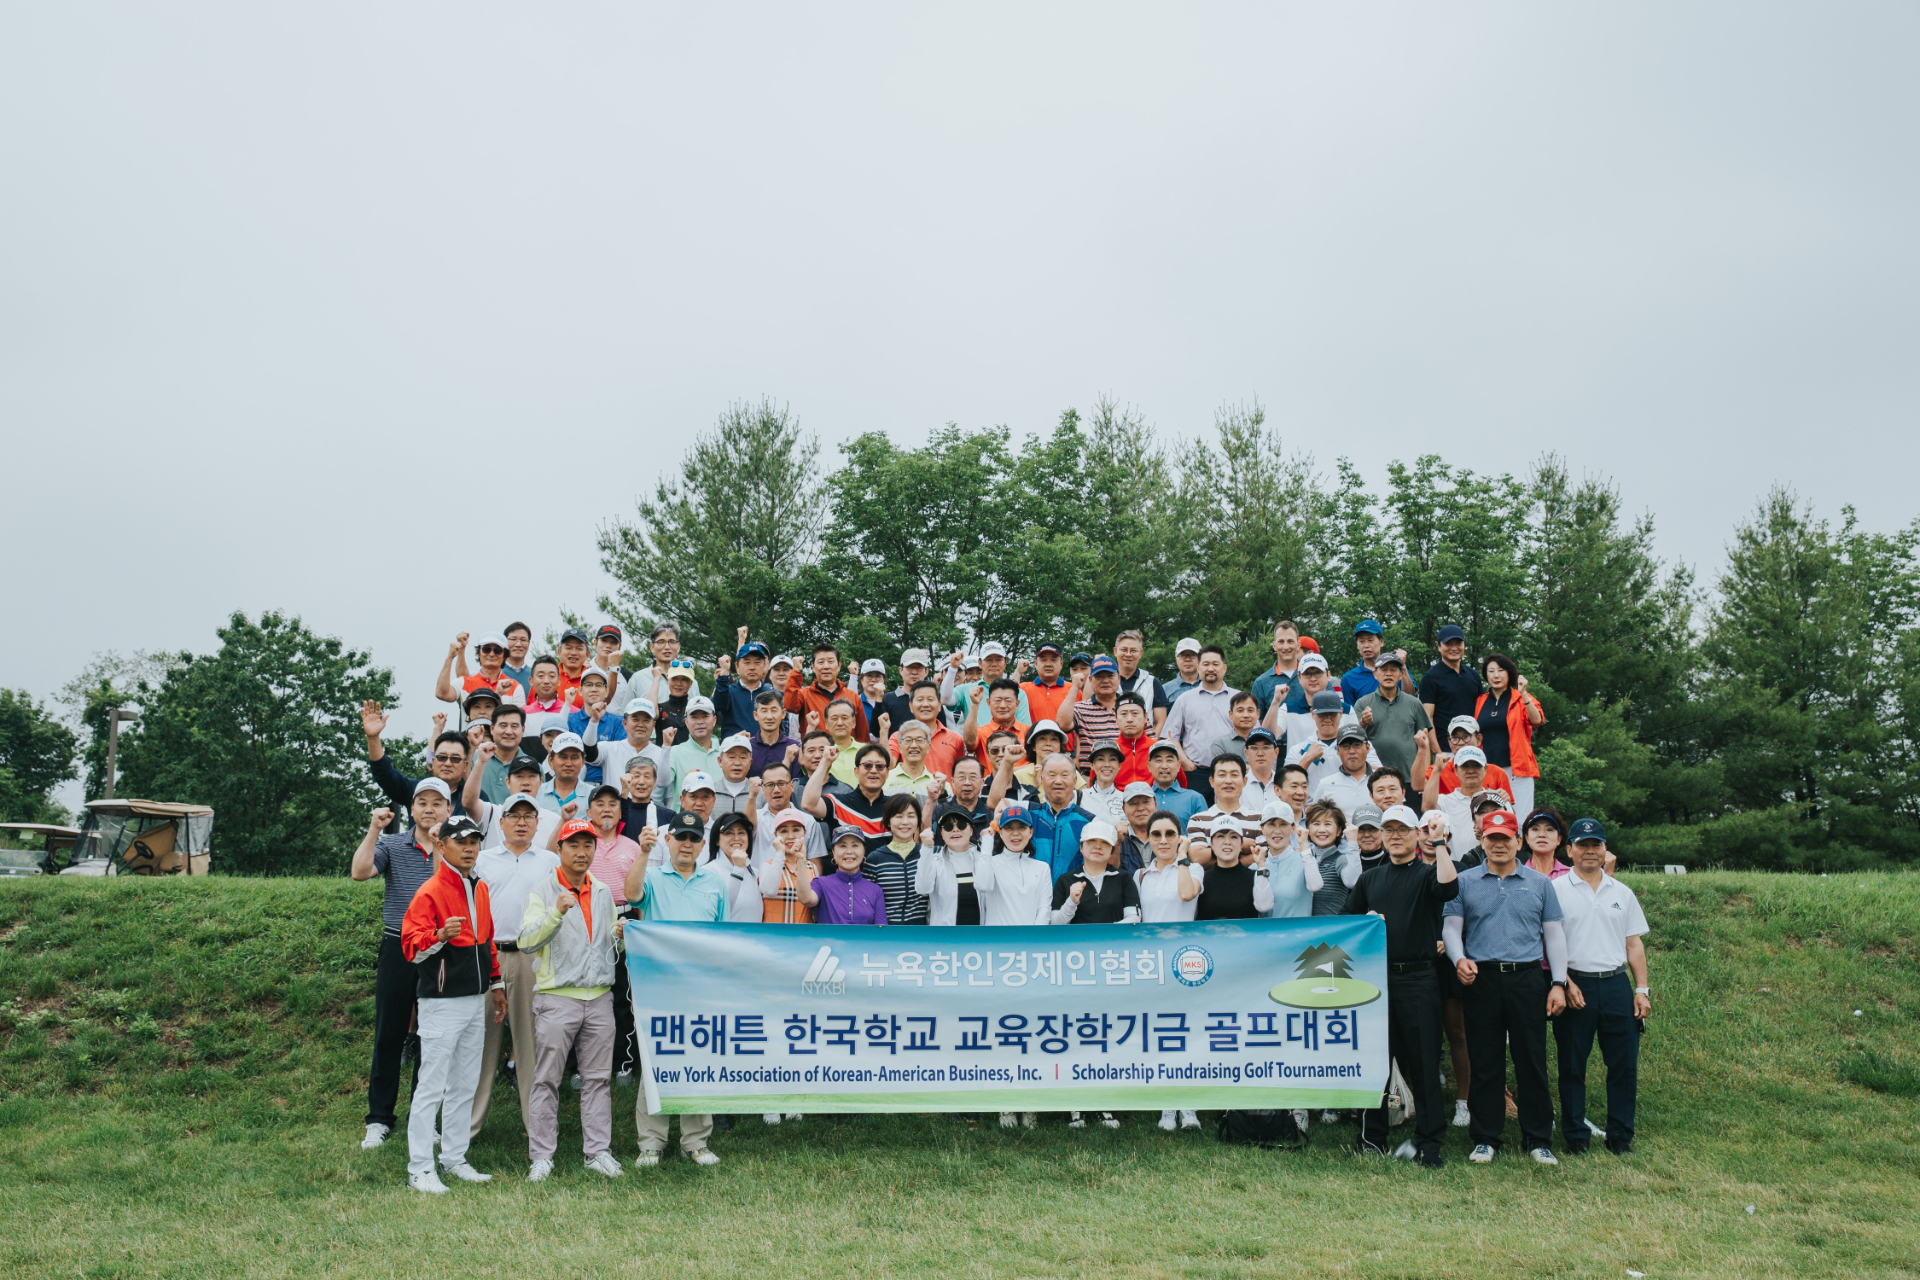 https://nykbi.com/new/wp-content/uploads/2019/07/190619-Scholarship-Fundraising-Golf-Tournament-012.jpg